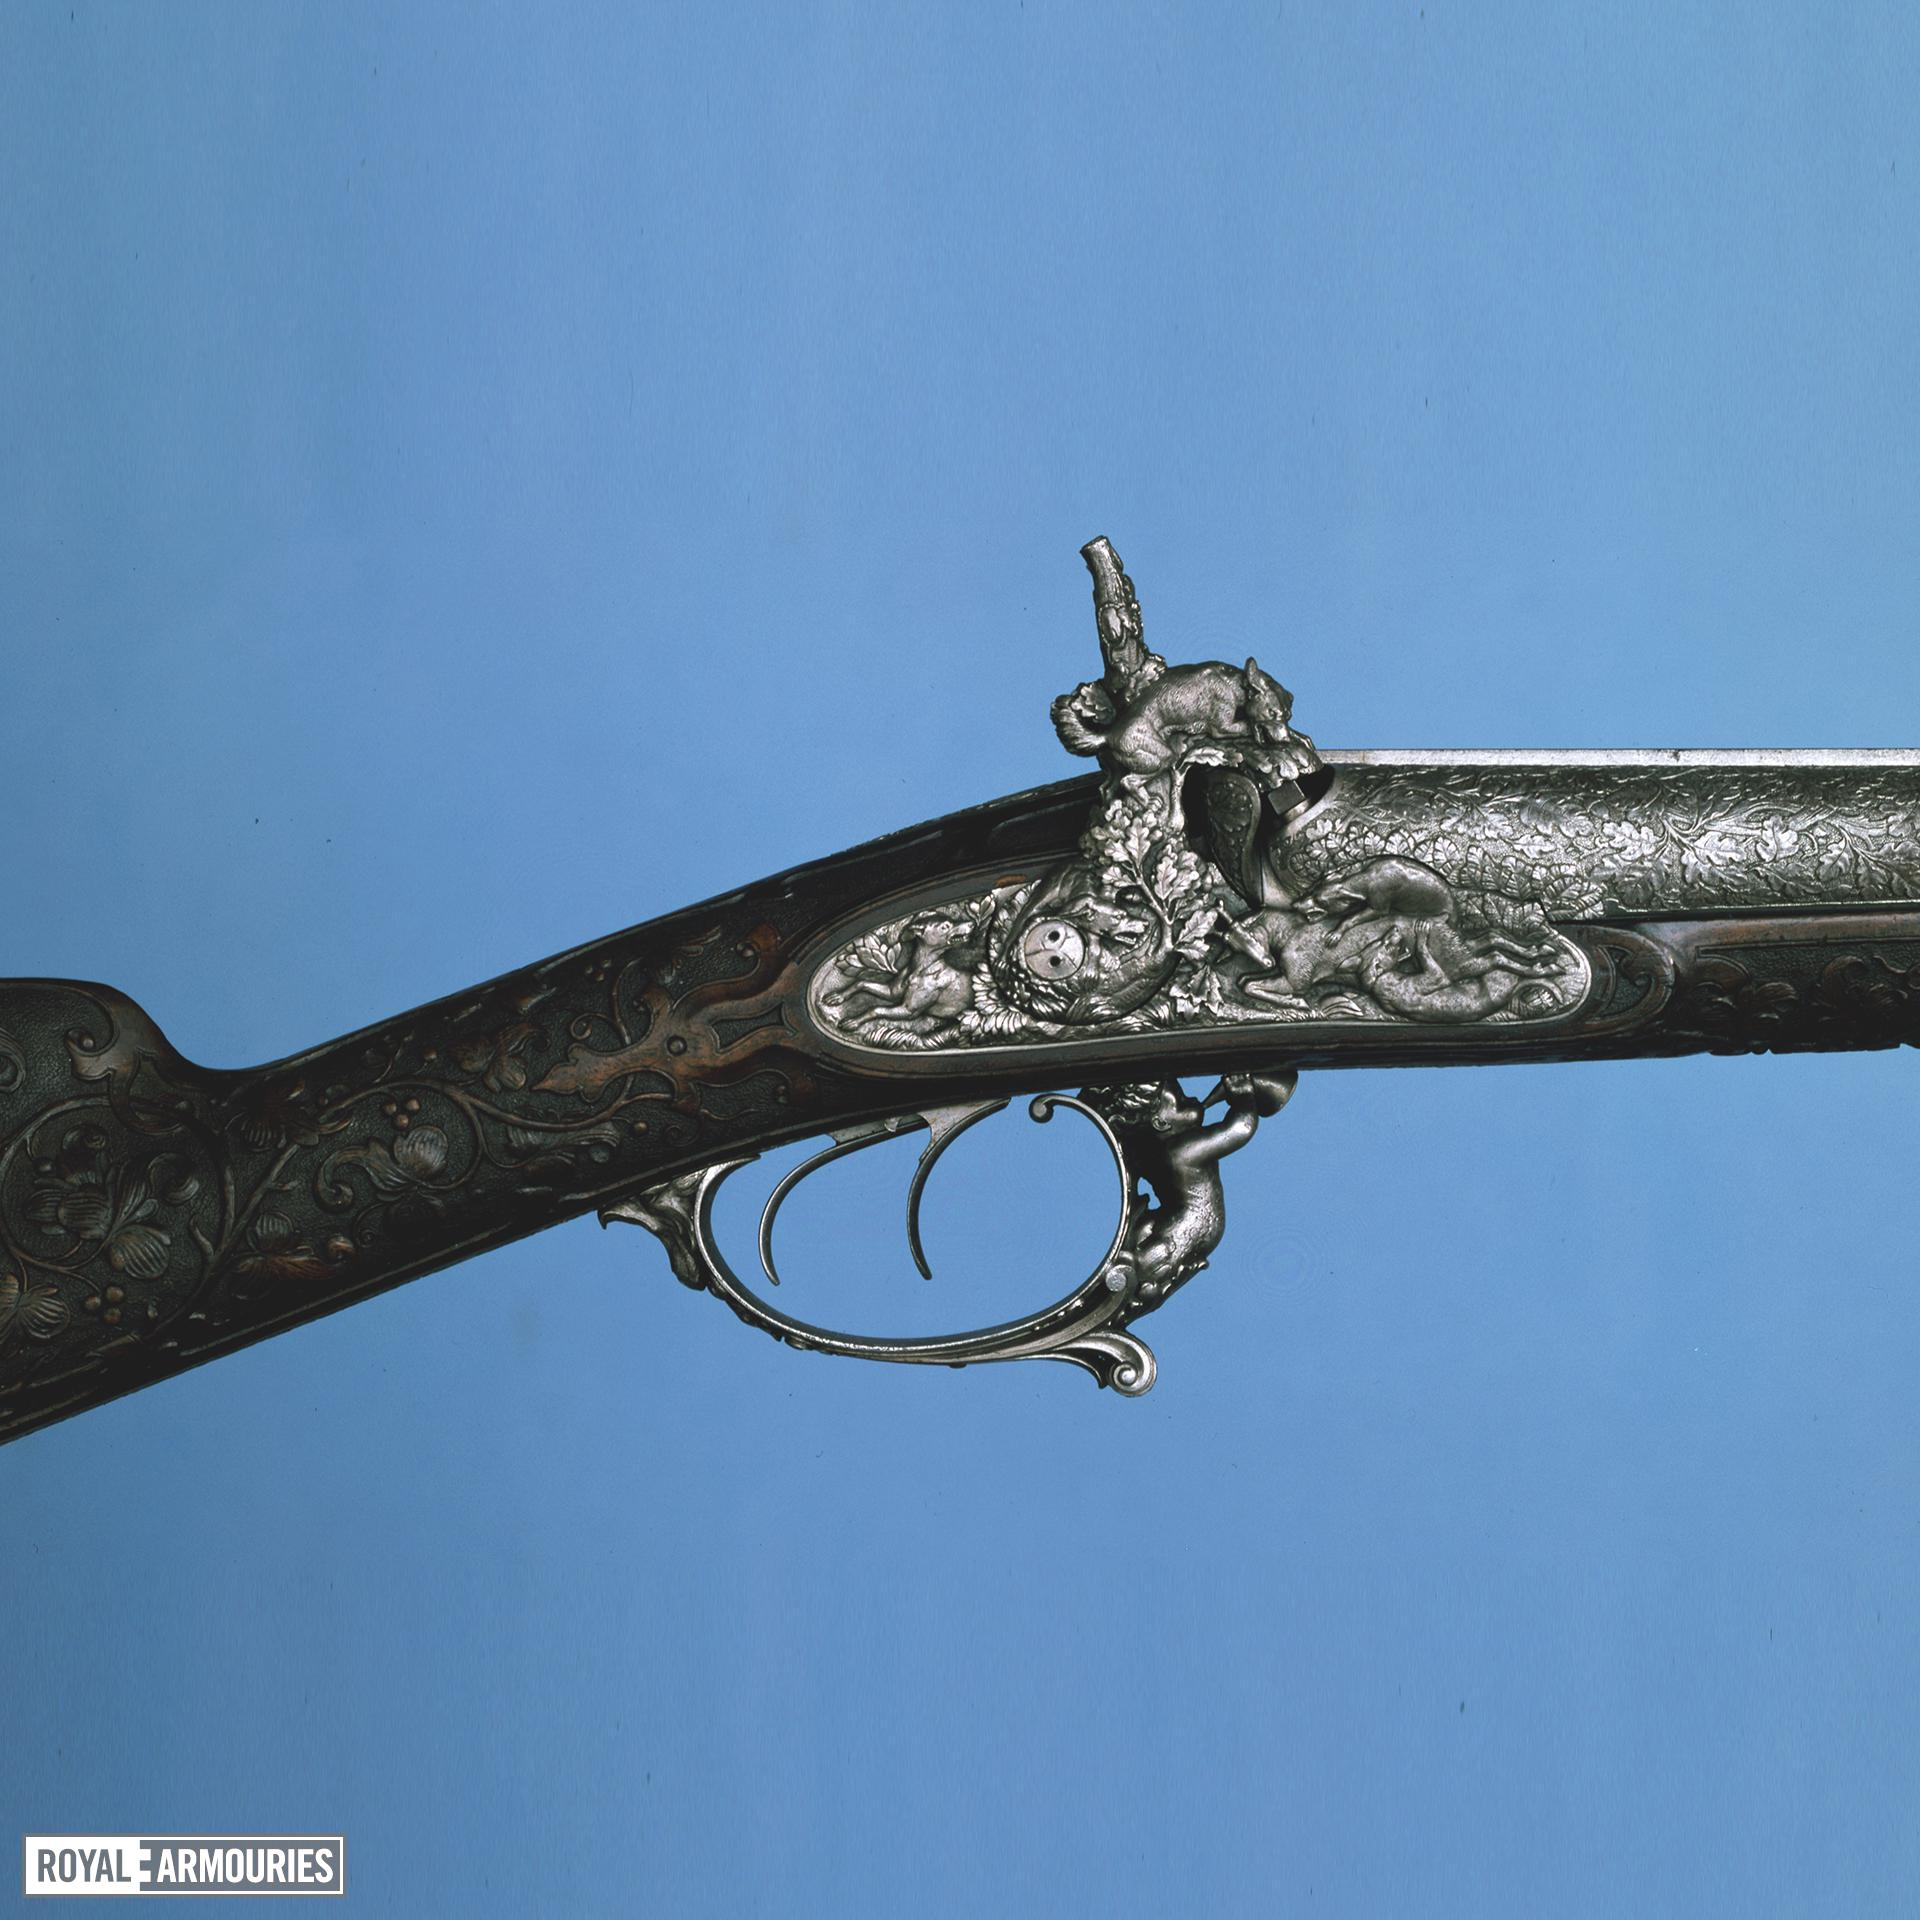 Percussion double-barrelled shotgun. LePage-Moutier exhibition gun. XII.4751